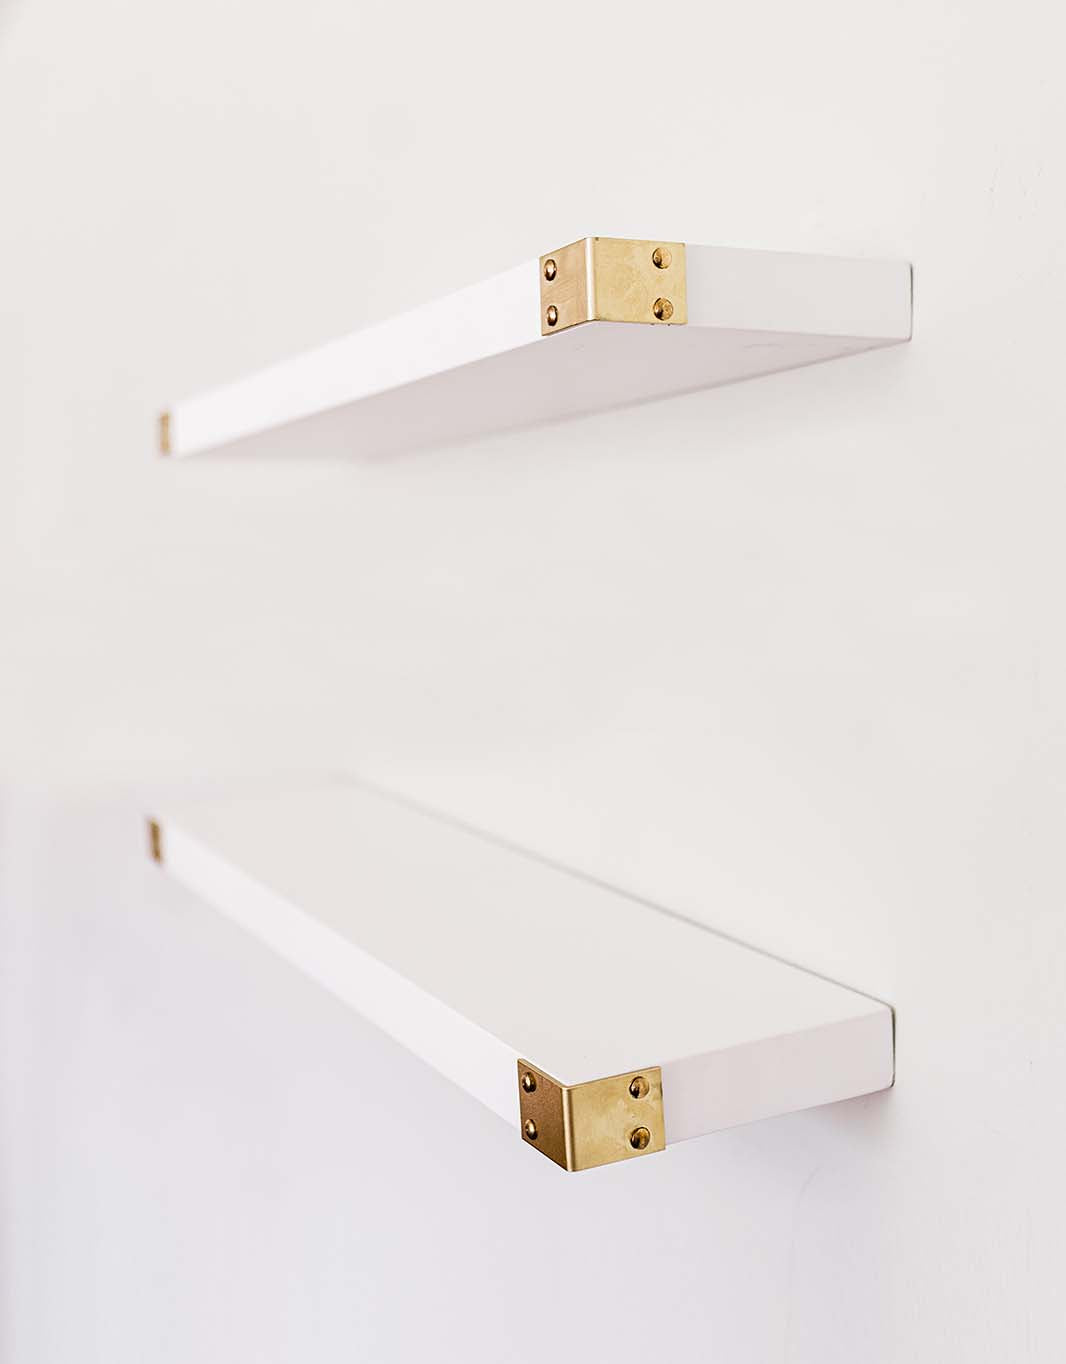 The Noelle (White) - Floating Shelves with Gold Metal Corners, All Wood Wall Shelves, 3 Coat Lacquer Finish- Set of 2 - Bedroom, Bathroom, Kitchen - 24 x 6 x 1.5 in